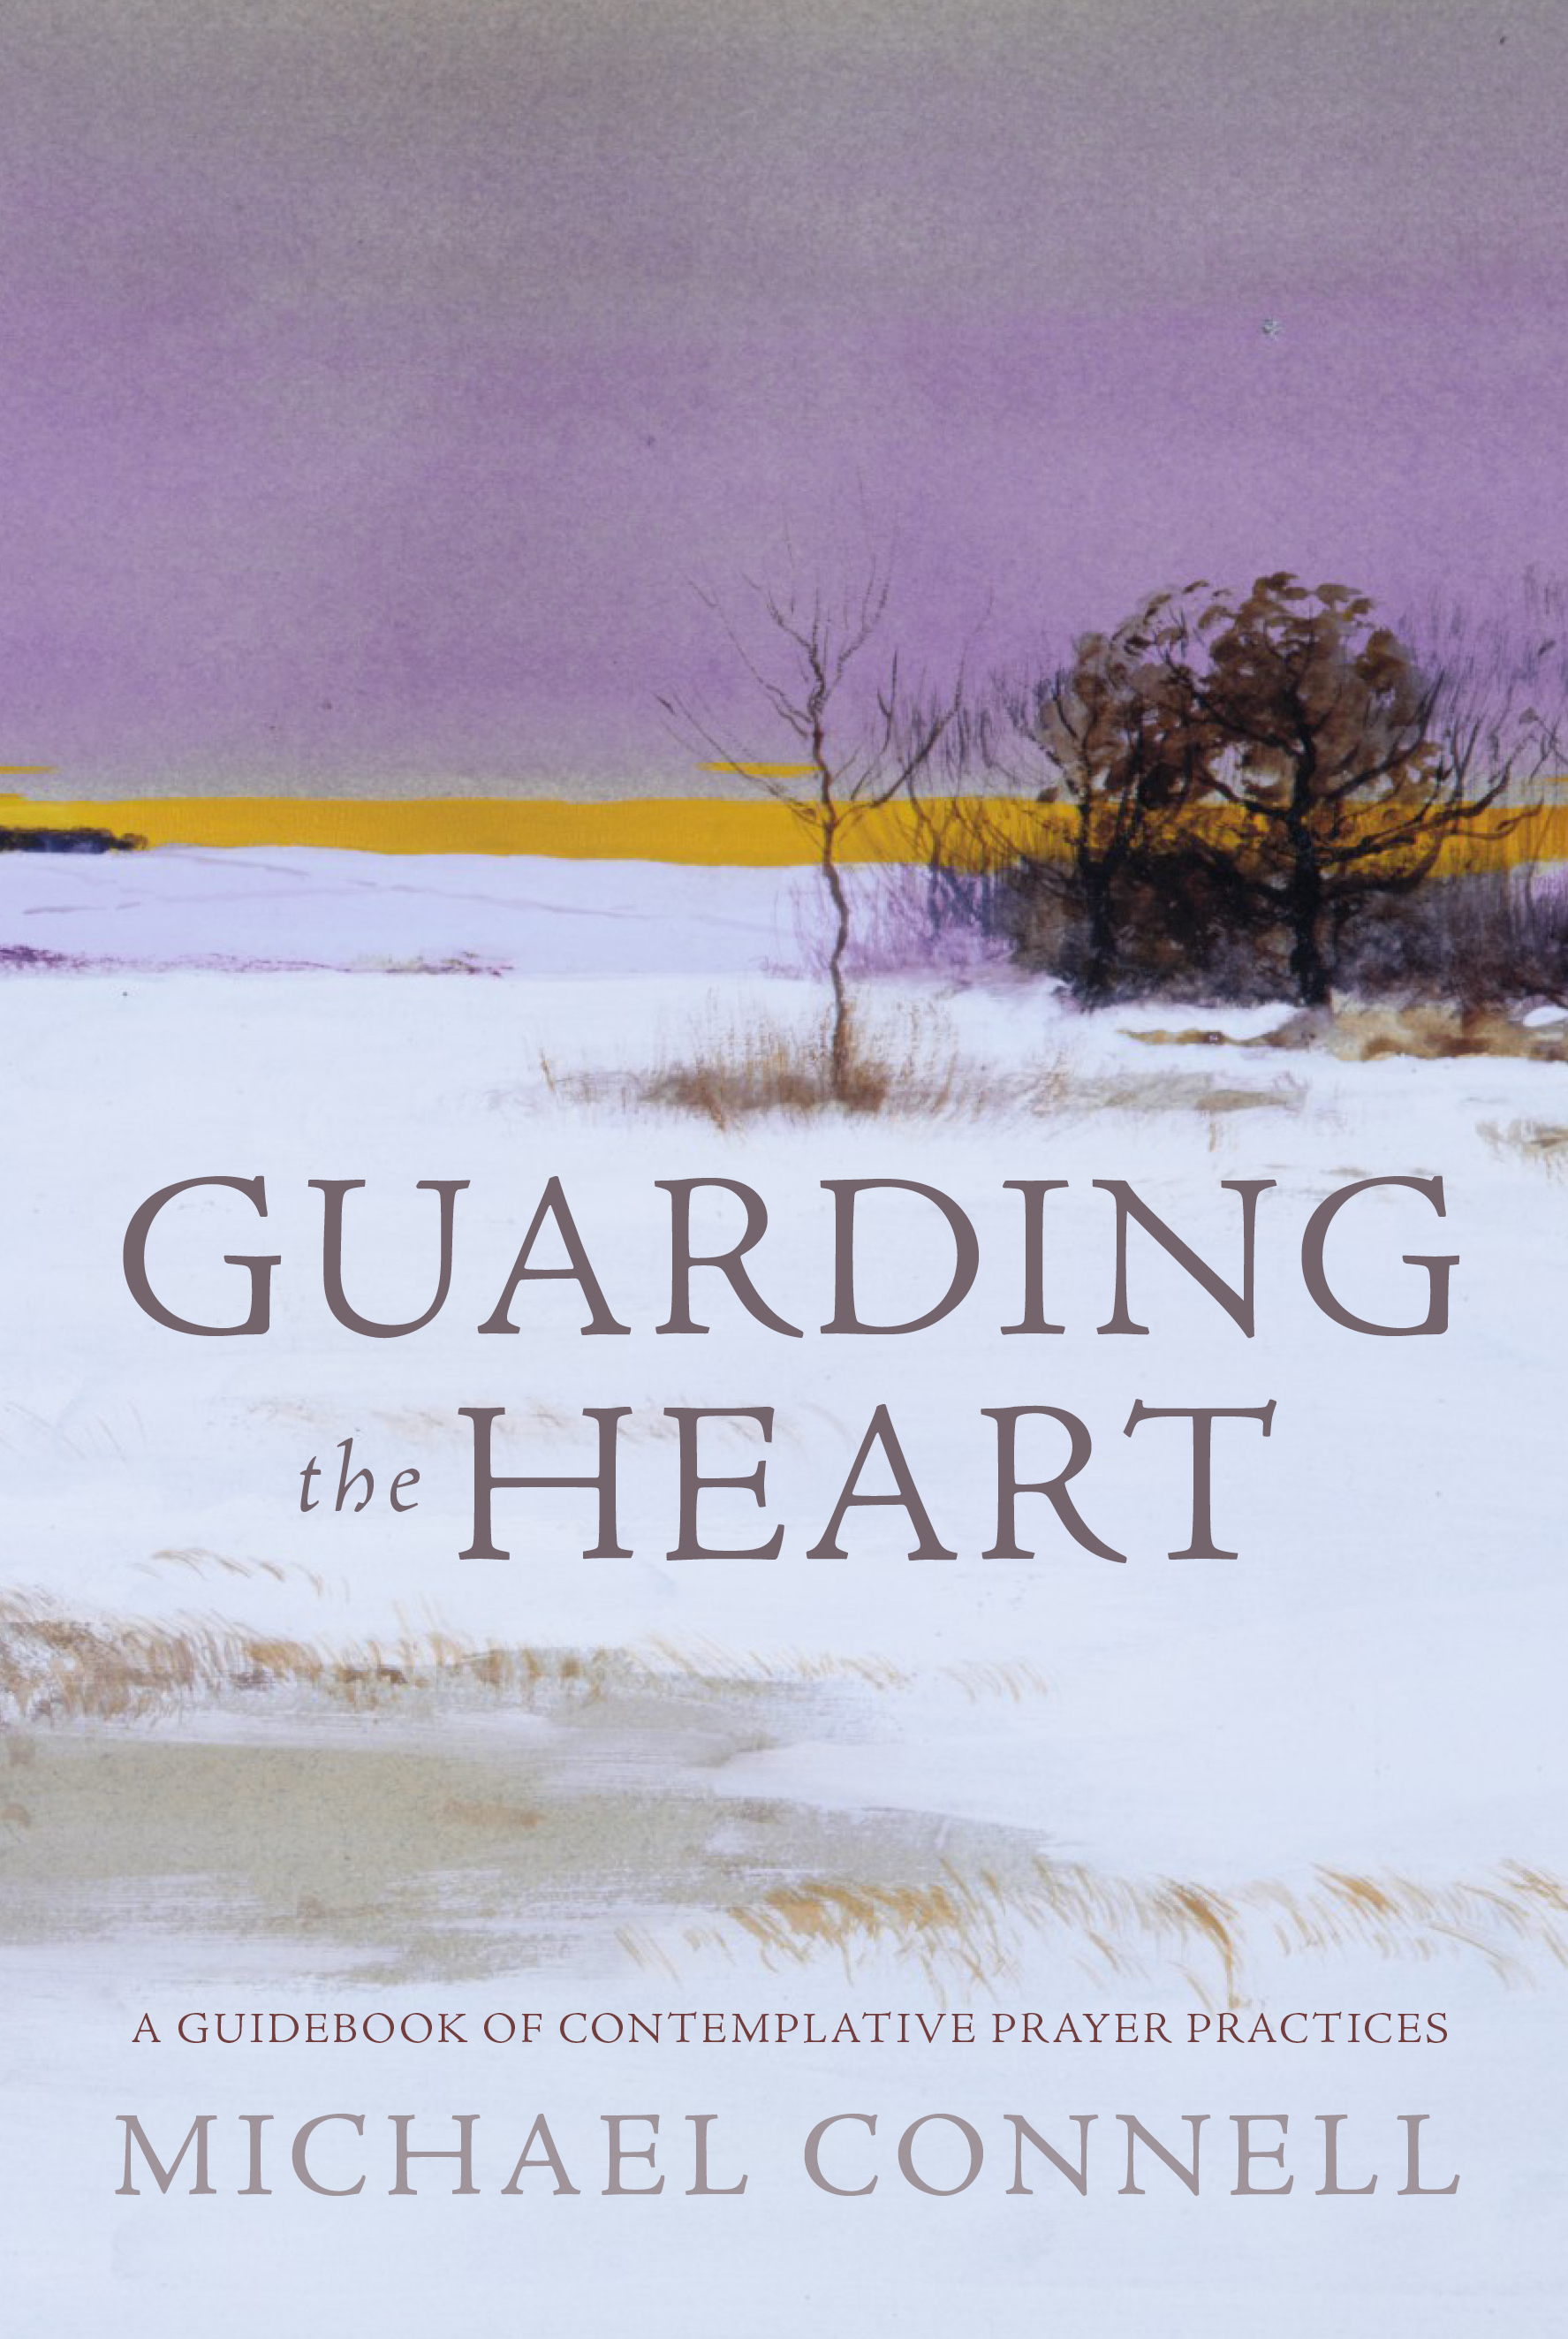 - Guarding the Heart: A Guidebook of Contemplative Prayer Practices is designed for people who are on the faith journey and who want to experience more from their prayer life. For many on that journey there is a strong sense of being drawn by the Spirit towards a deeper way to enrich one's contact with one's source and to strengthen that relationship. This guidebook will provide some simple and powerful prayer practices to experiment with to continue that deeper descent into the Divine. Each of the prayer practices is designed to be a general starting point for the user to experiment with. If, after trying some of the practices, one resonates with you, I have provided an extensive list of resources where you will find many wonderful books by the experts in the world of prayer and contemplative practices.Buy the book on Amazon